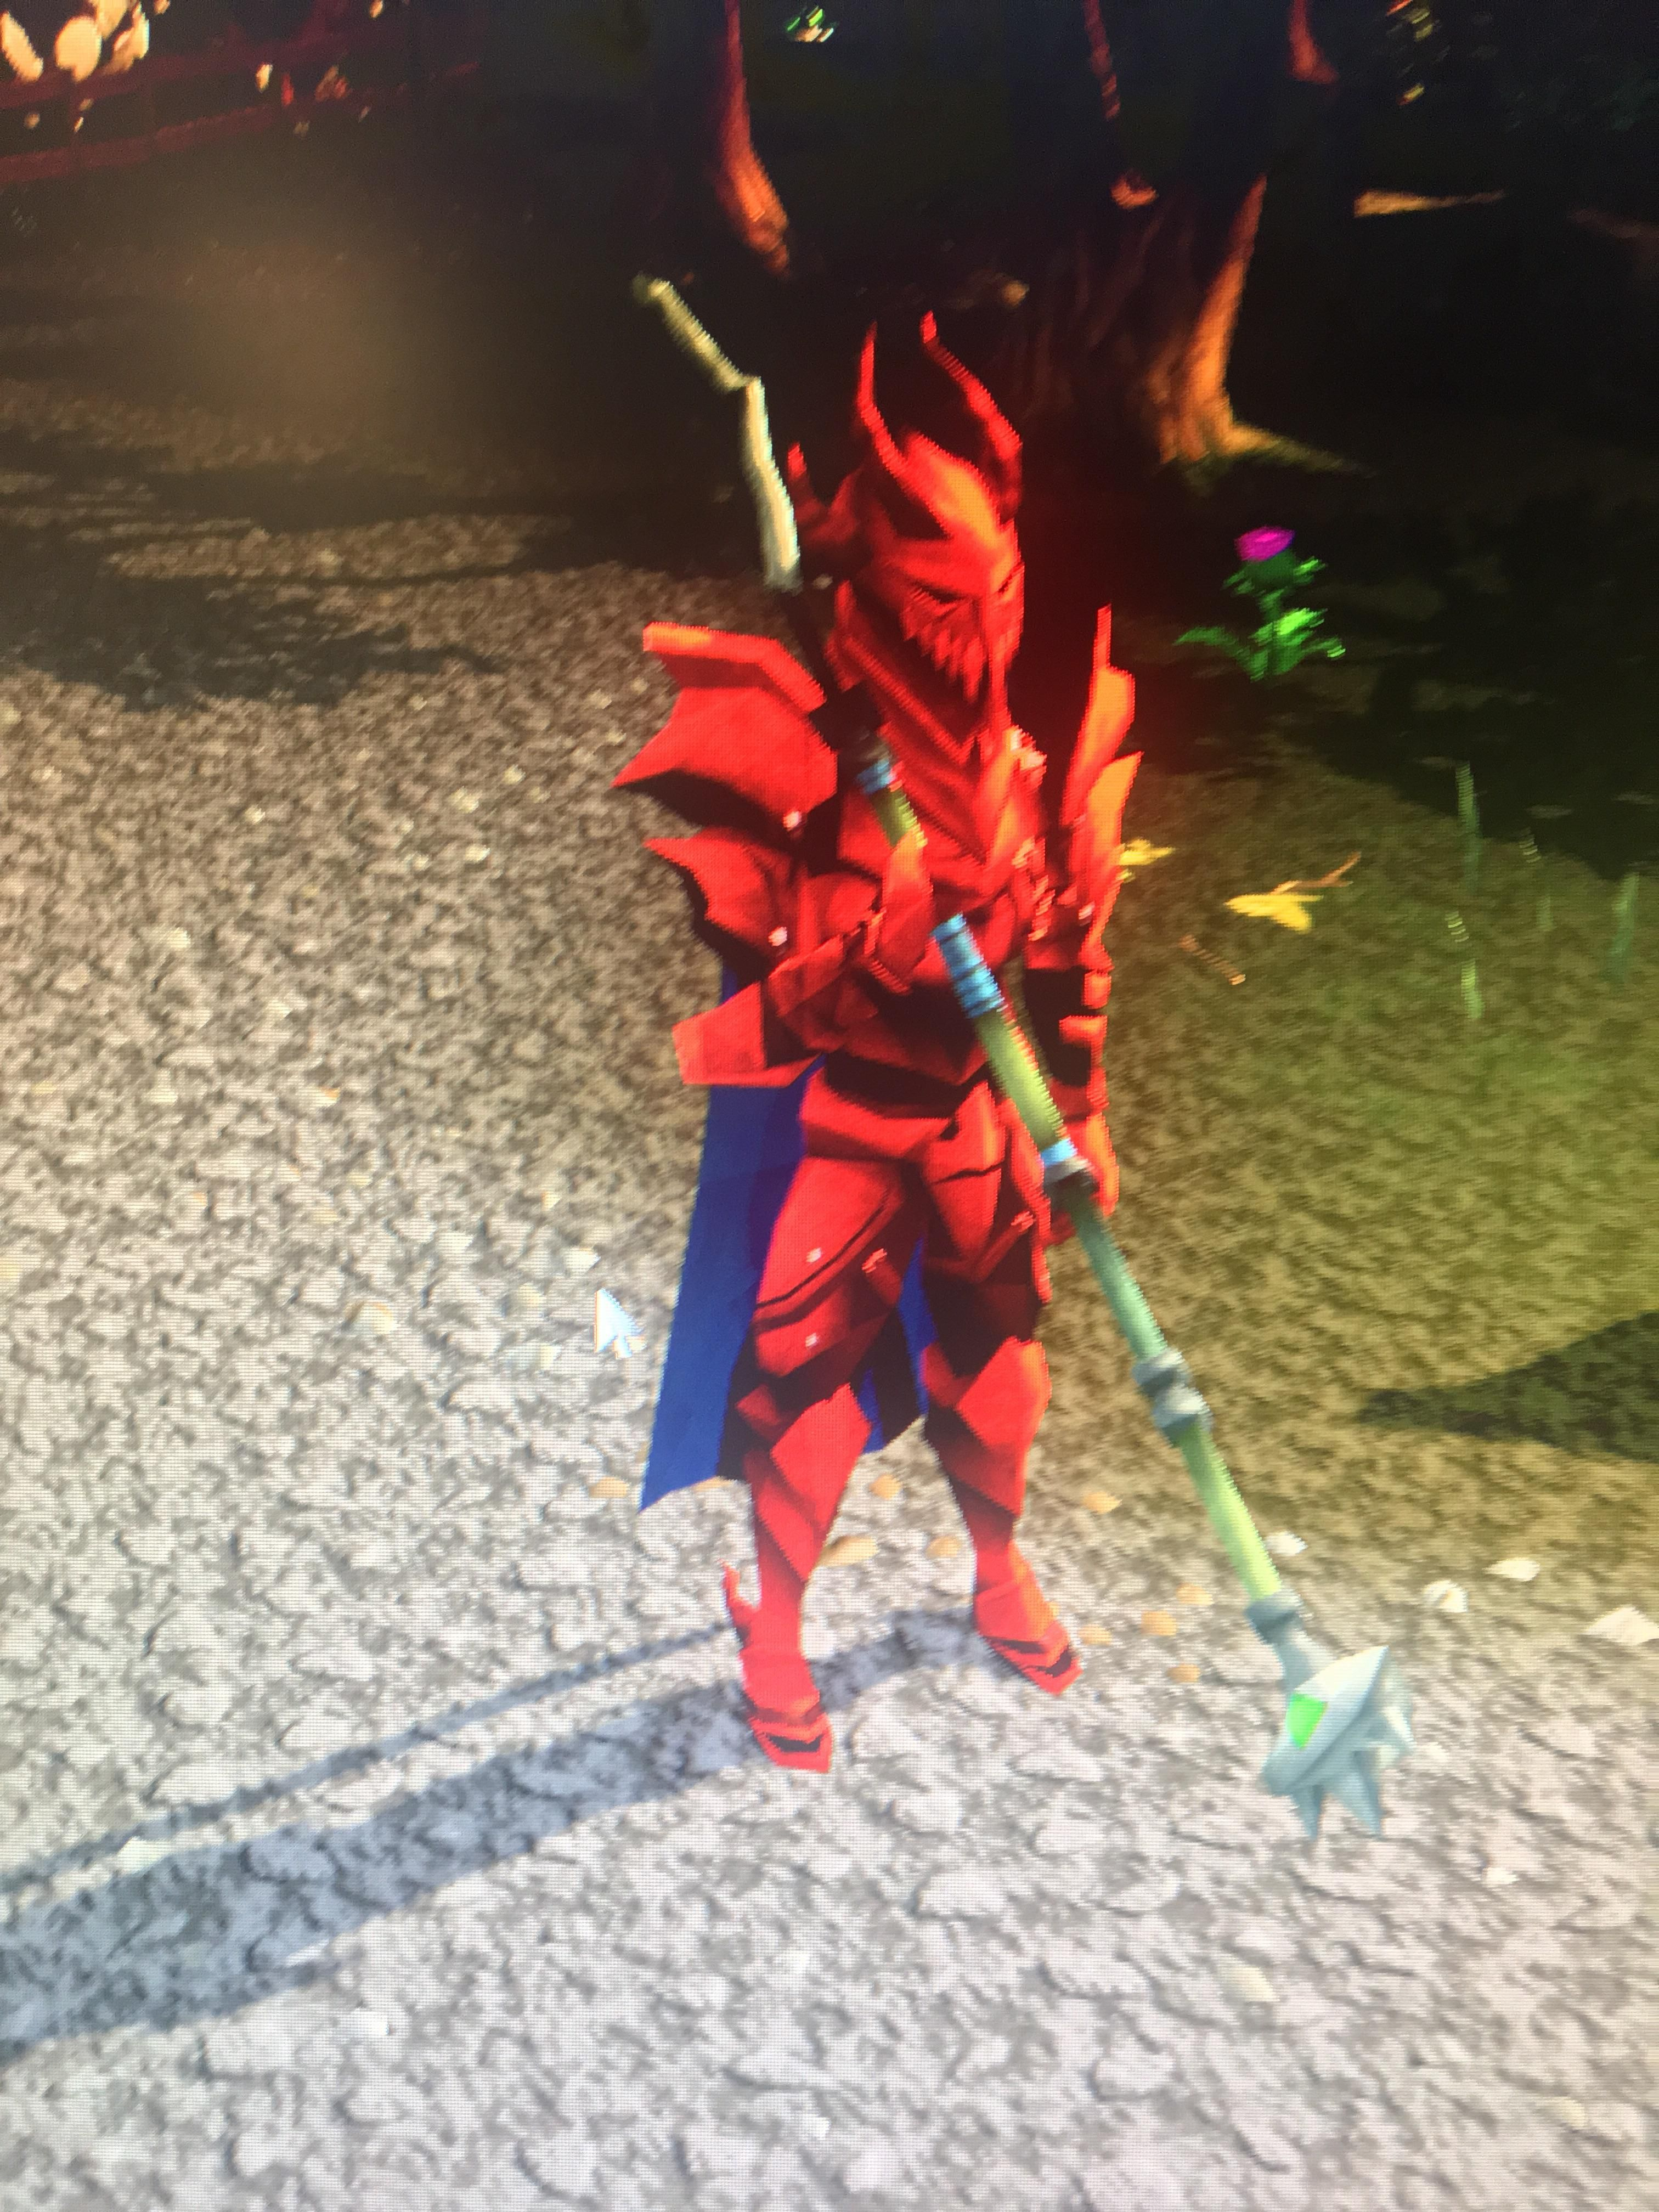 Why am I holding my spear like a 2h? I'm not using any overrides and I've tried resetting my outfit and sheathing and unsheathing. Even tried switching back and forth between EoC and Legacy with no luck.